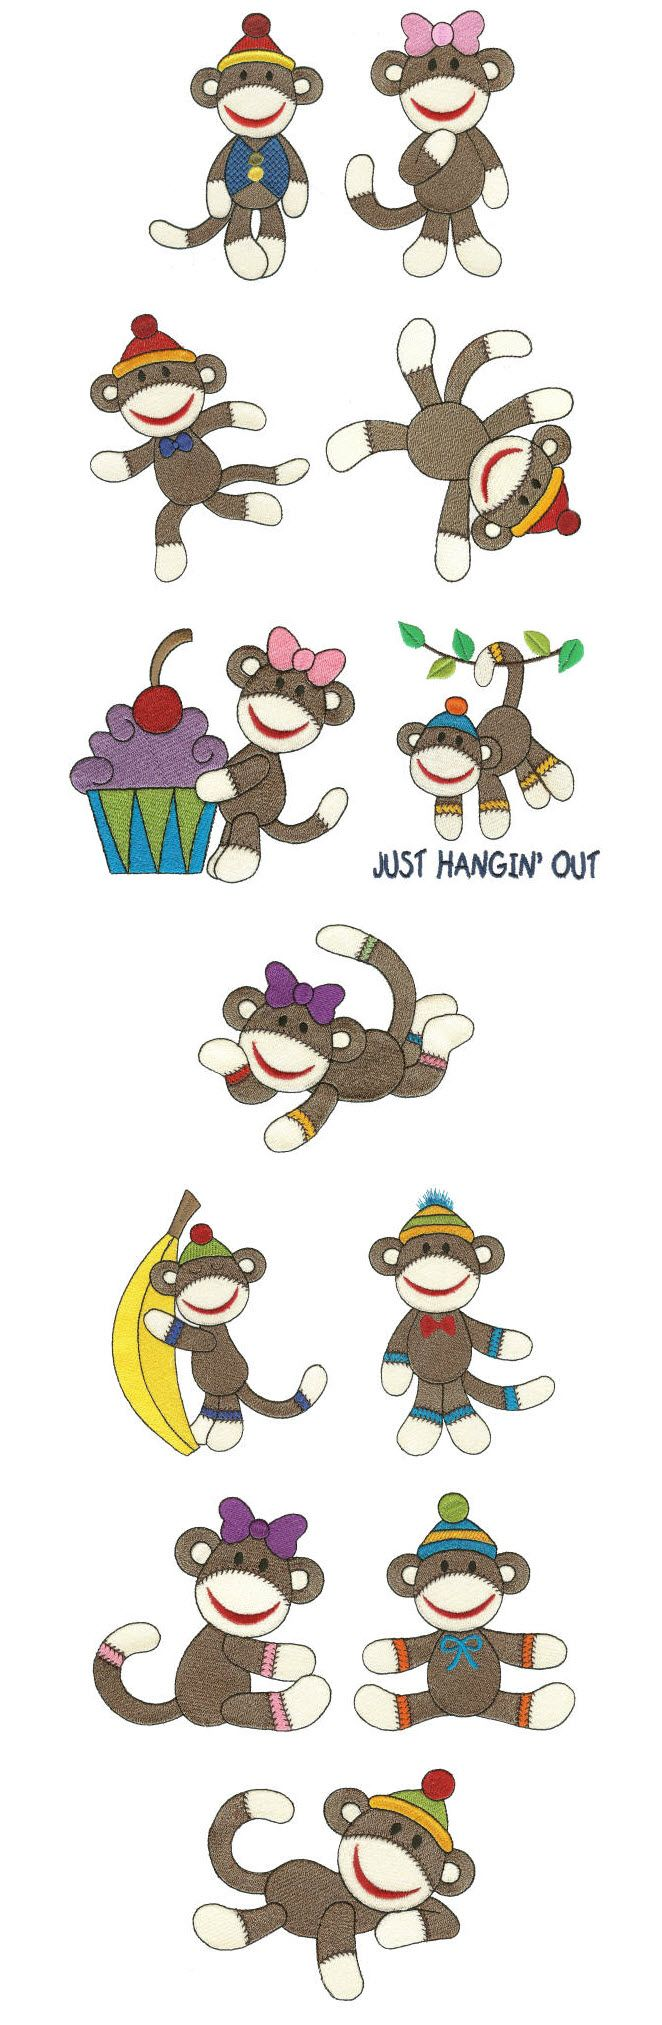 110 Best Sock Monkey Cards Images On Pinterest Sock Monkeys Cards